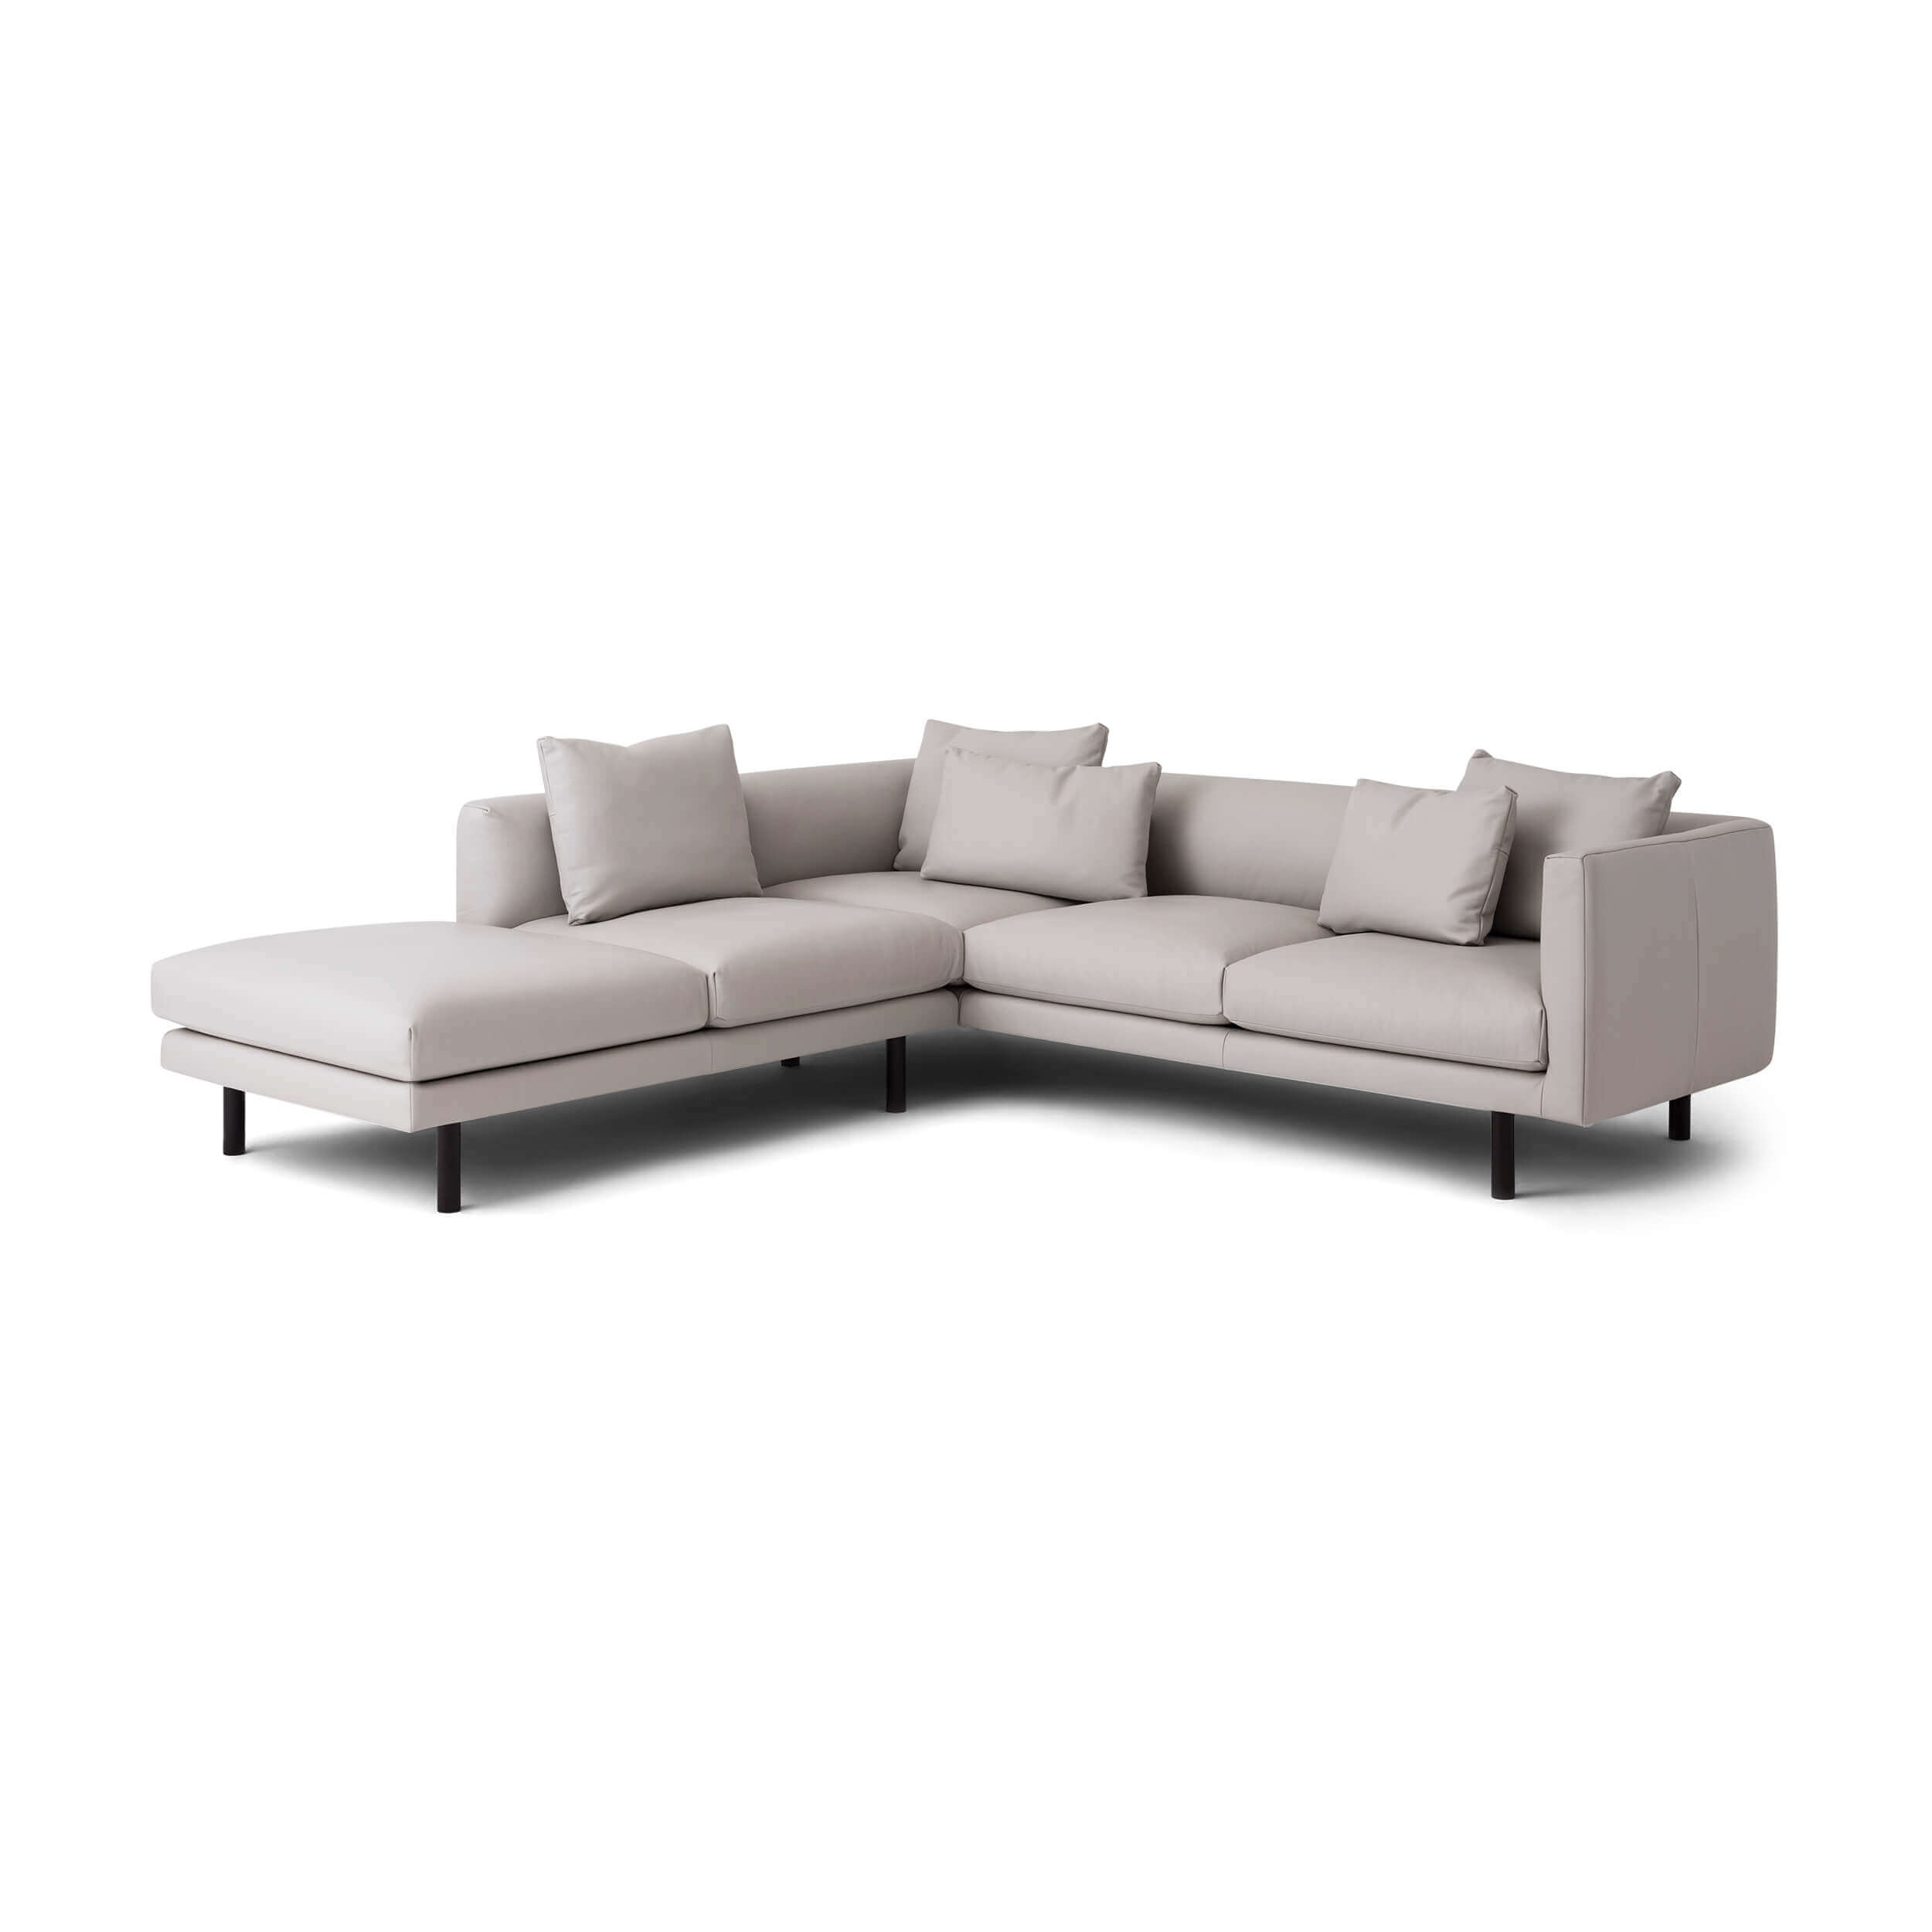 Stupendous Replay 2 Piece Sectional Sofa With Backless Chaise Leather Caraccident5 Cool Chair Designs And Ideas Caraccident5Info